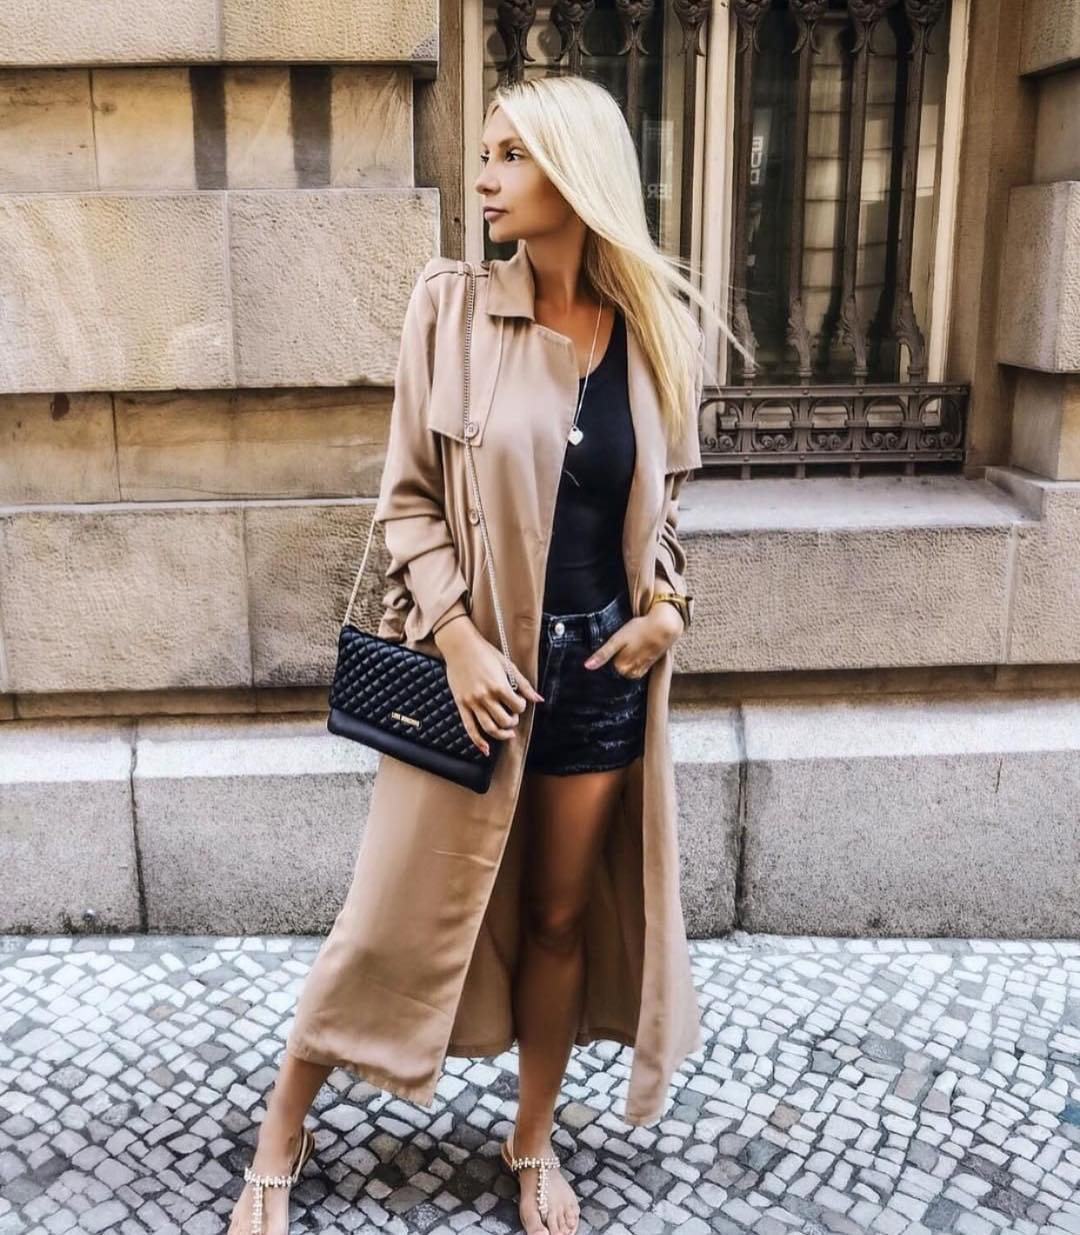 Maxi Trench Coat In Beige For Summer Chilly Days 2020